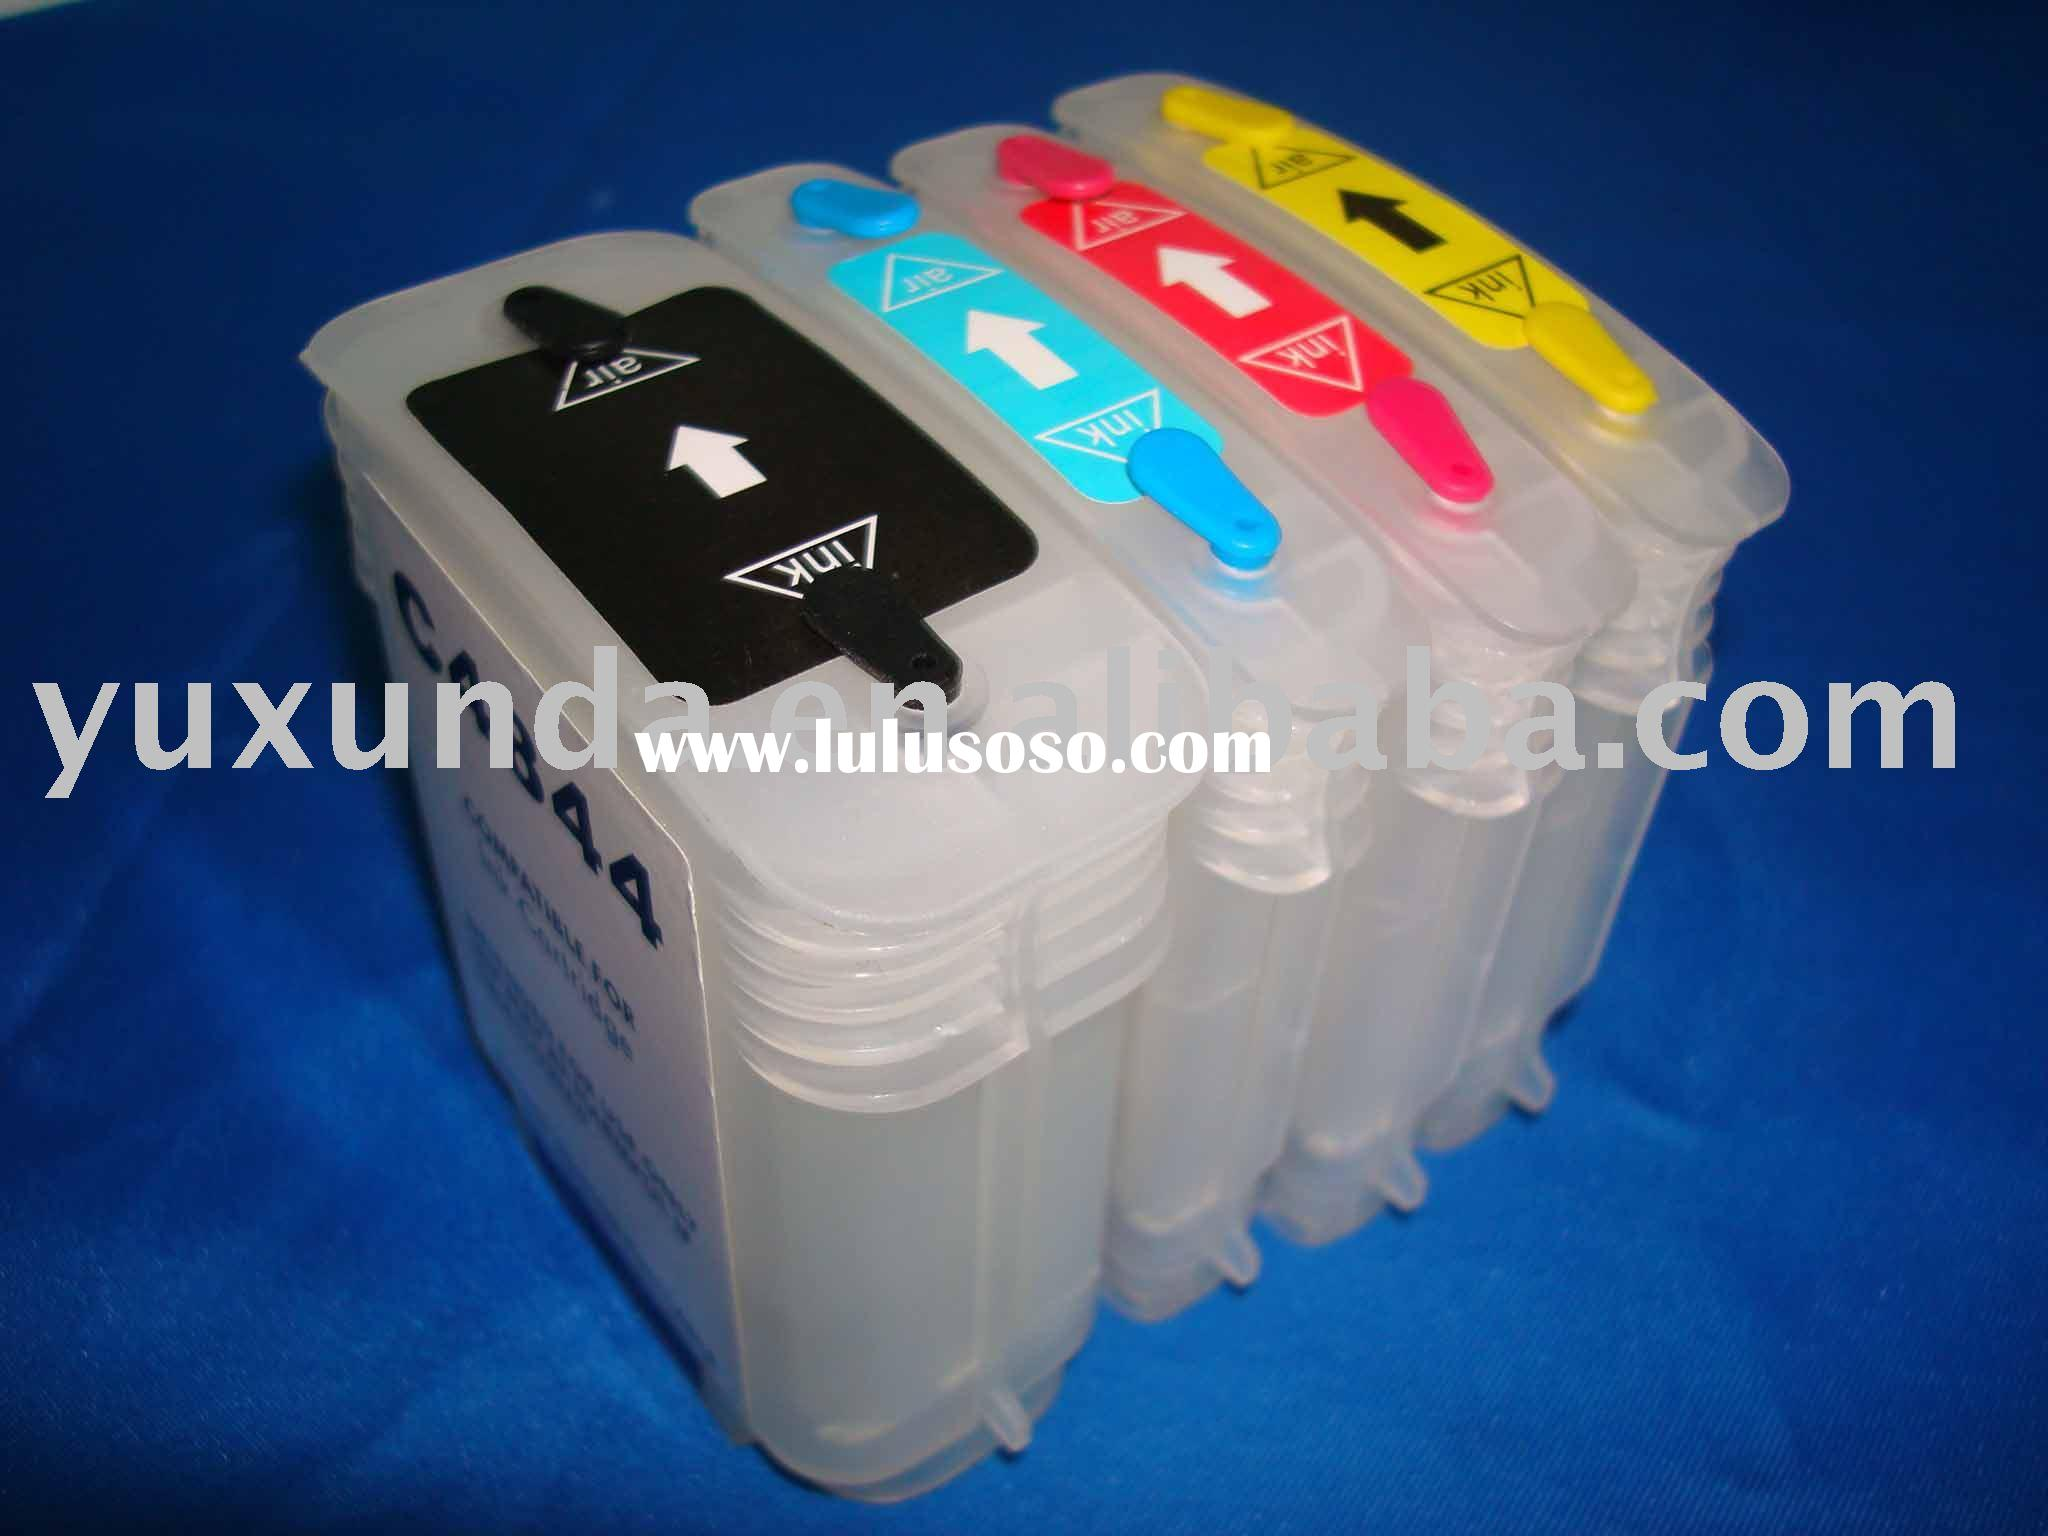 Refill Cartridge for HP